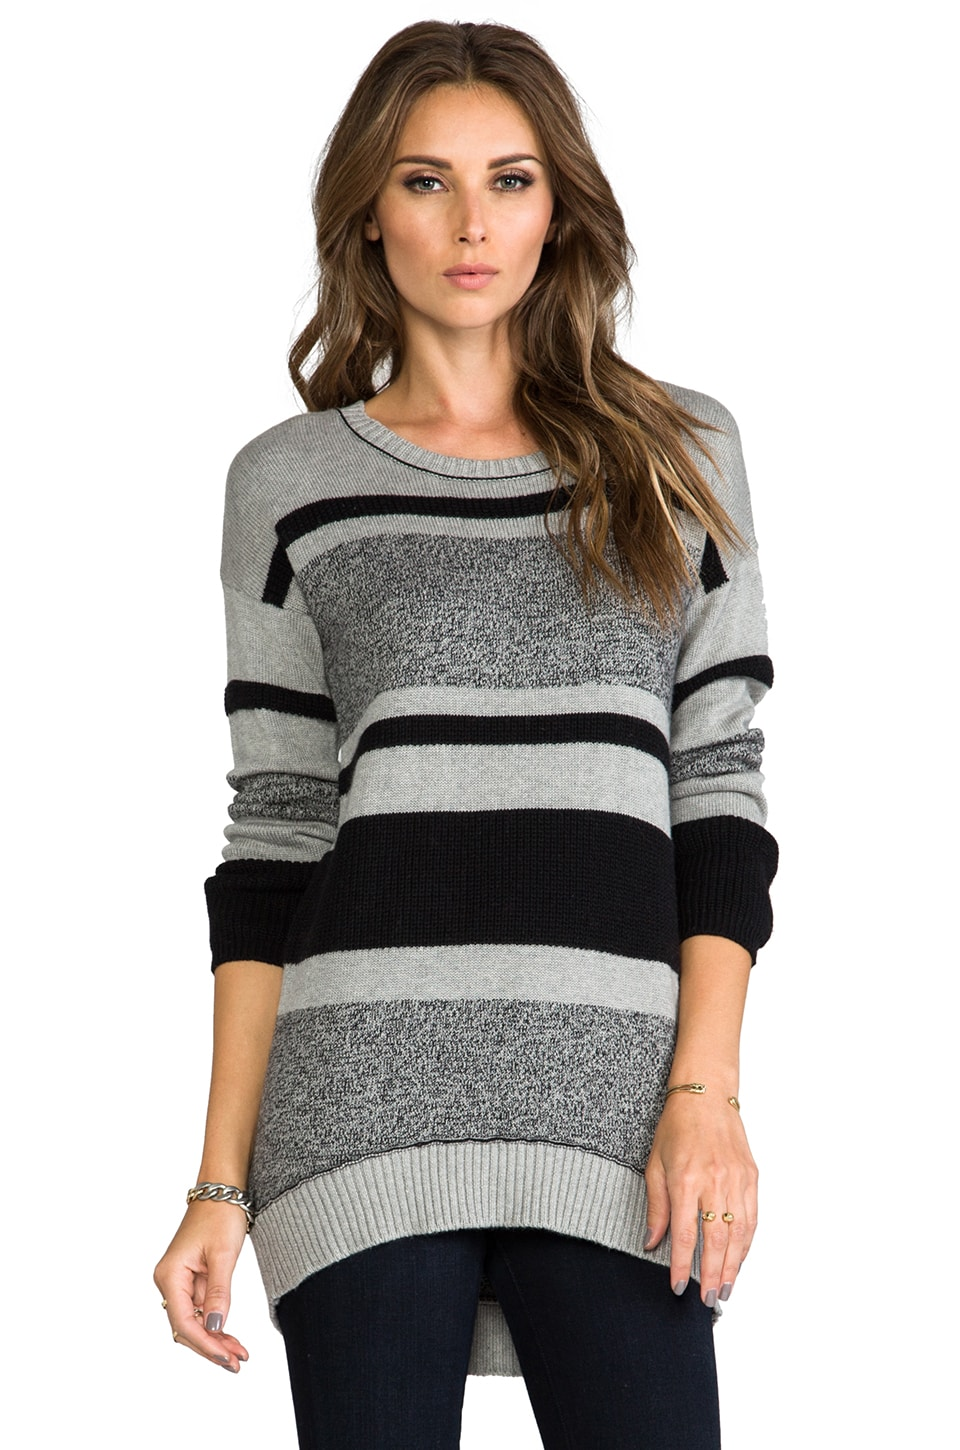 Vintageous Unites Stripe Sweater in Mineral/Black